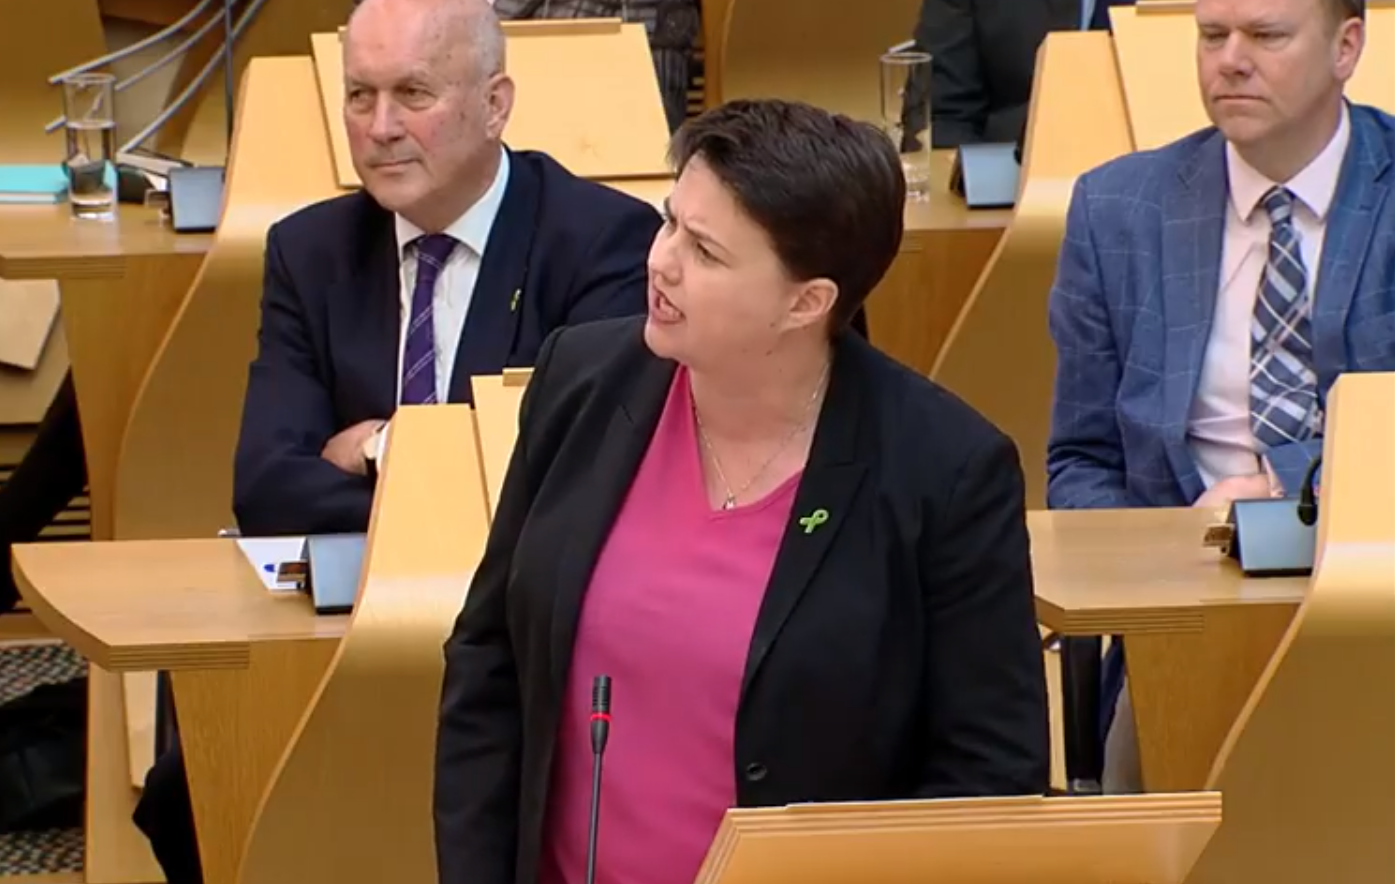 Ruth Davidson asked the First Minister about subject choices at schools